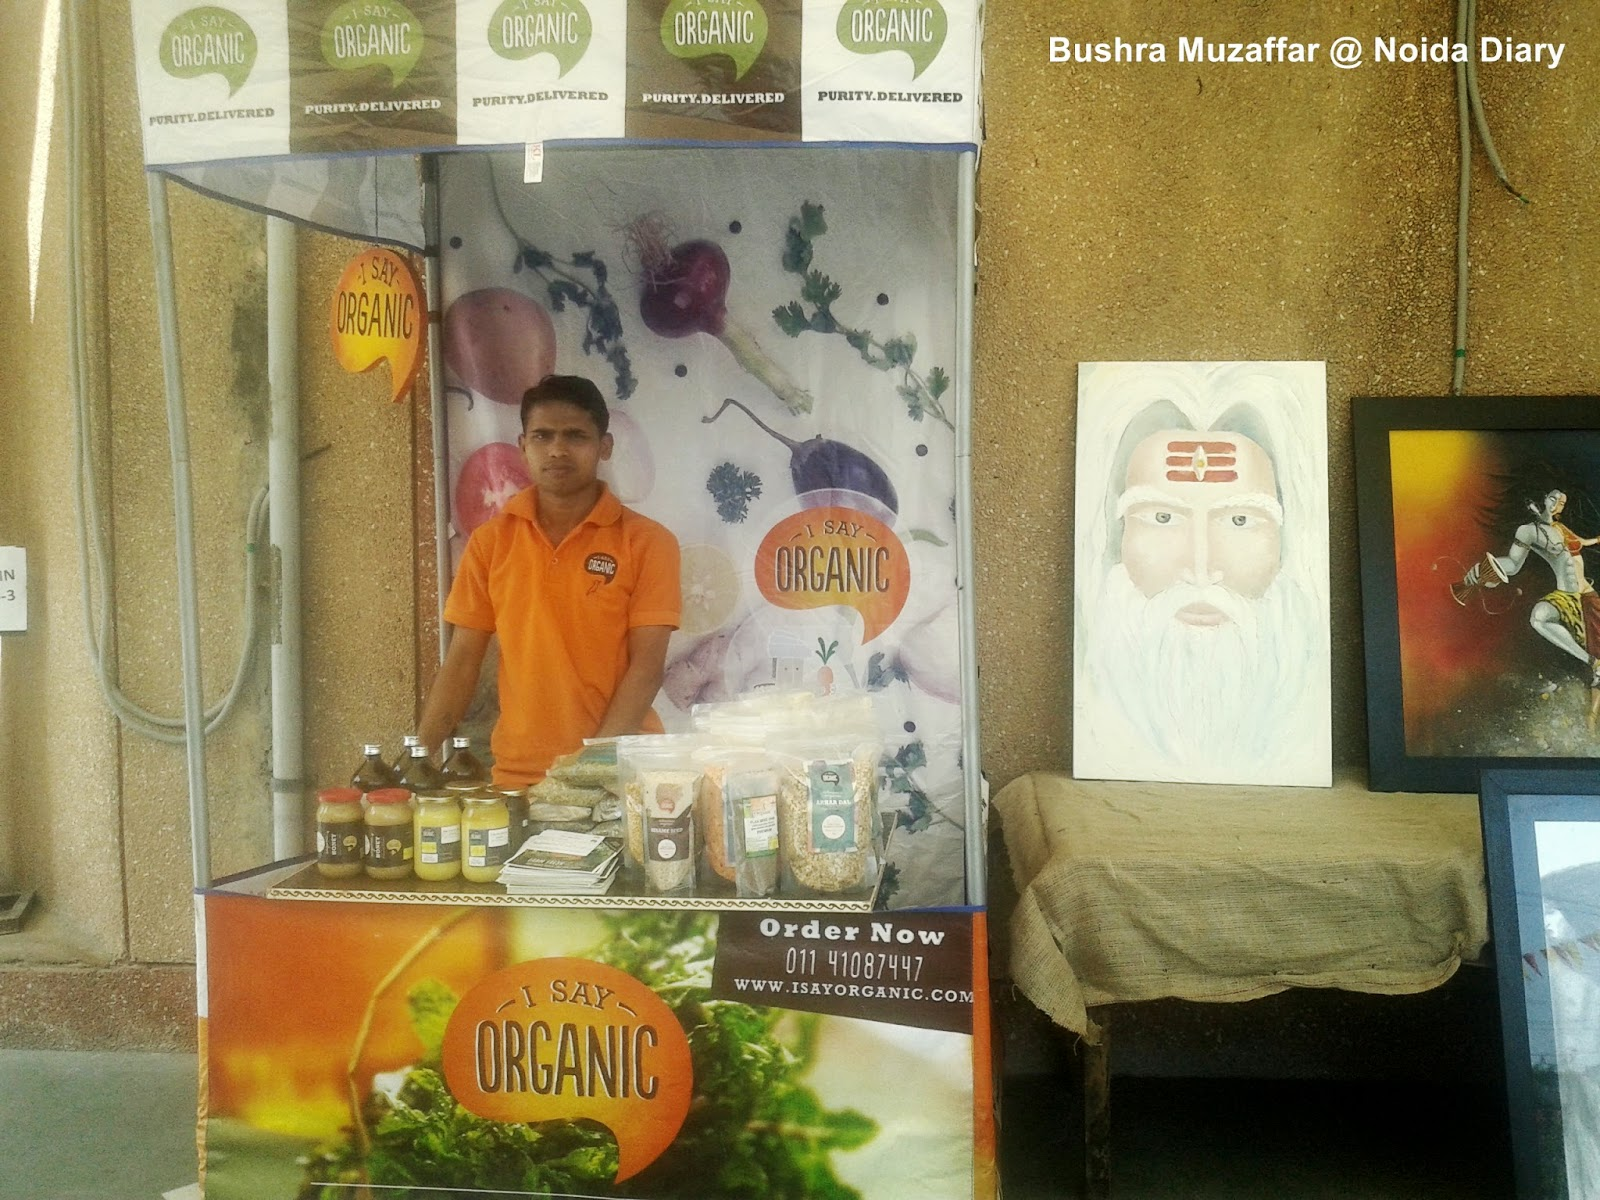 I Say Organic at Vasant Uday Spring Festival in Noida